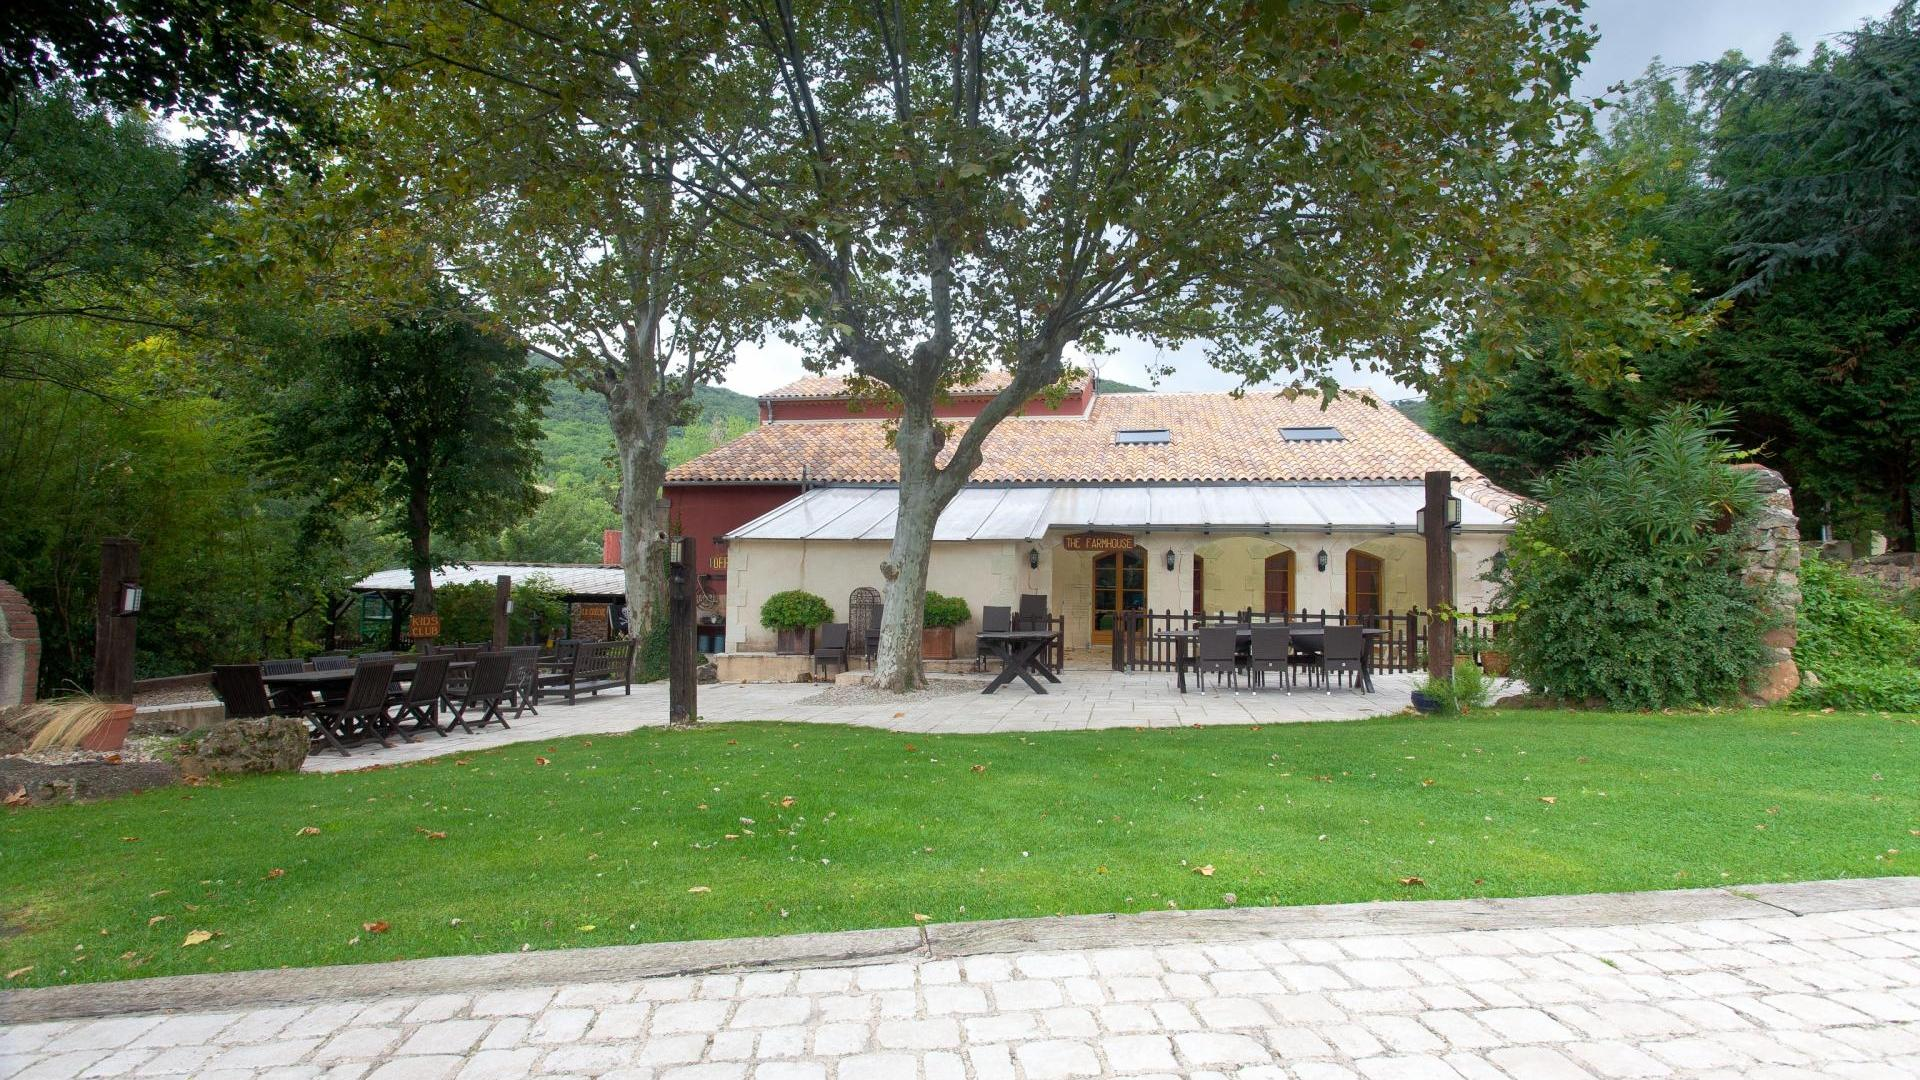 Luxury child-friendly holiday cottage Languedoc-Roussillon - SNFH